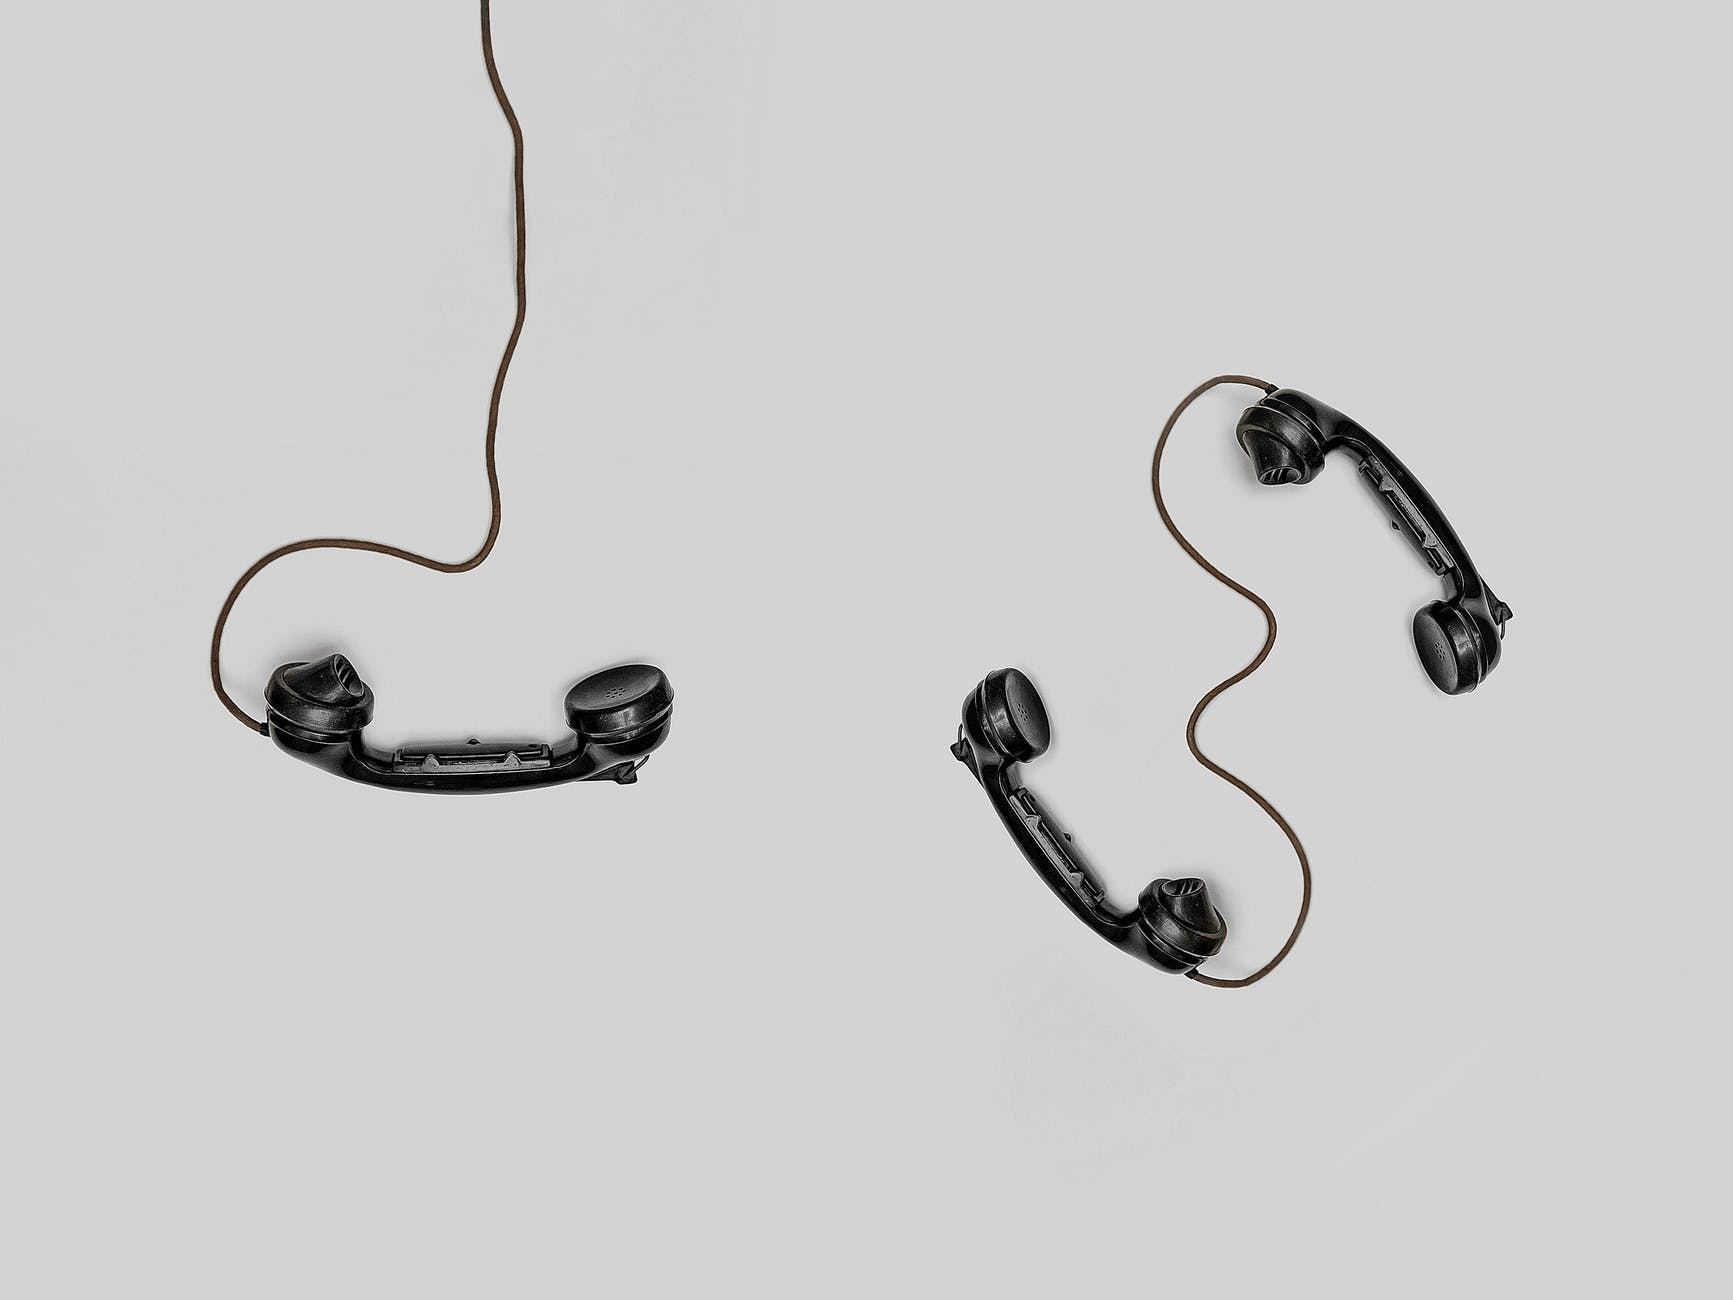 Phones connected to wires